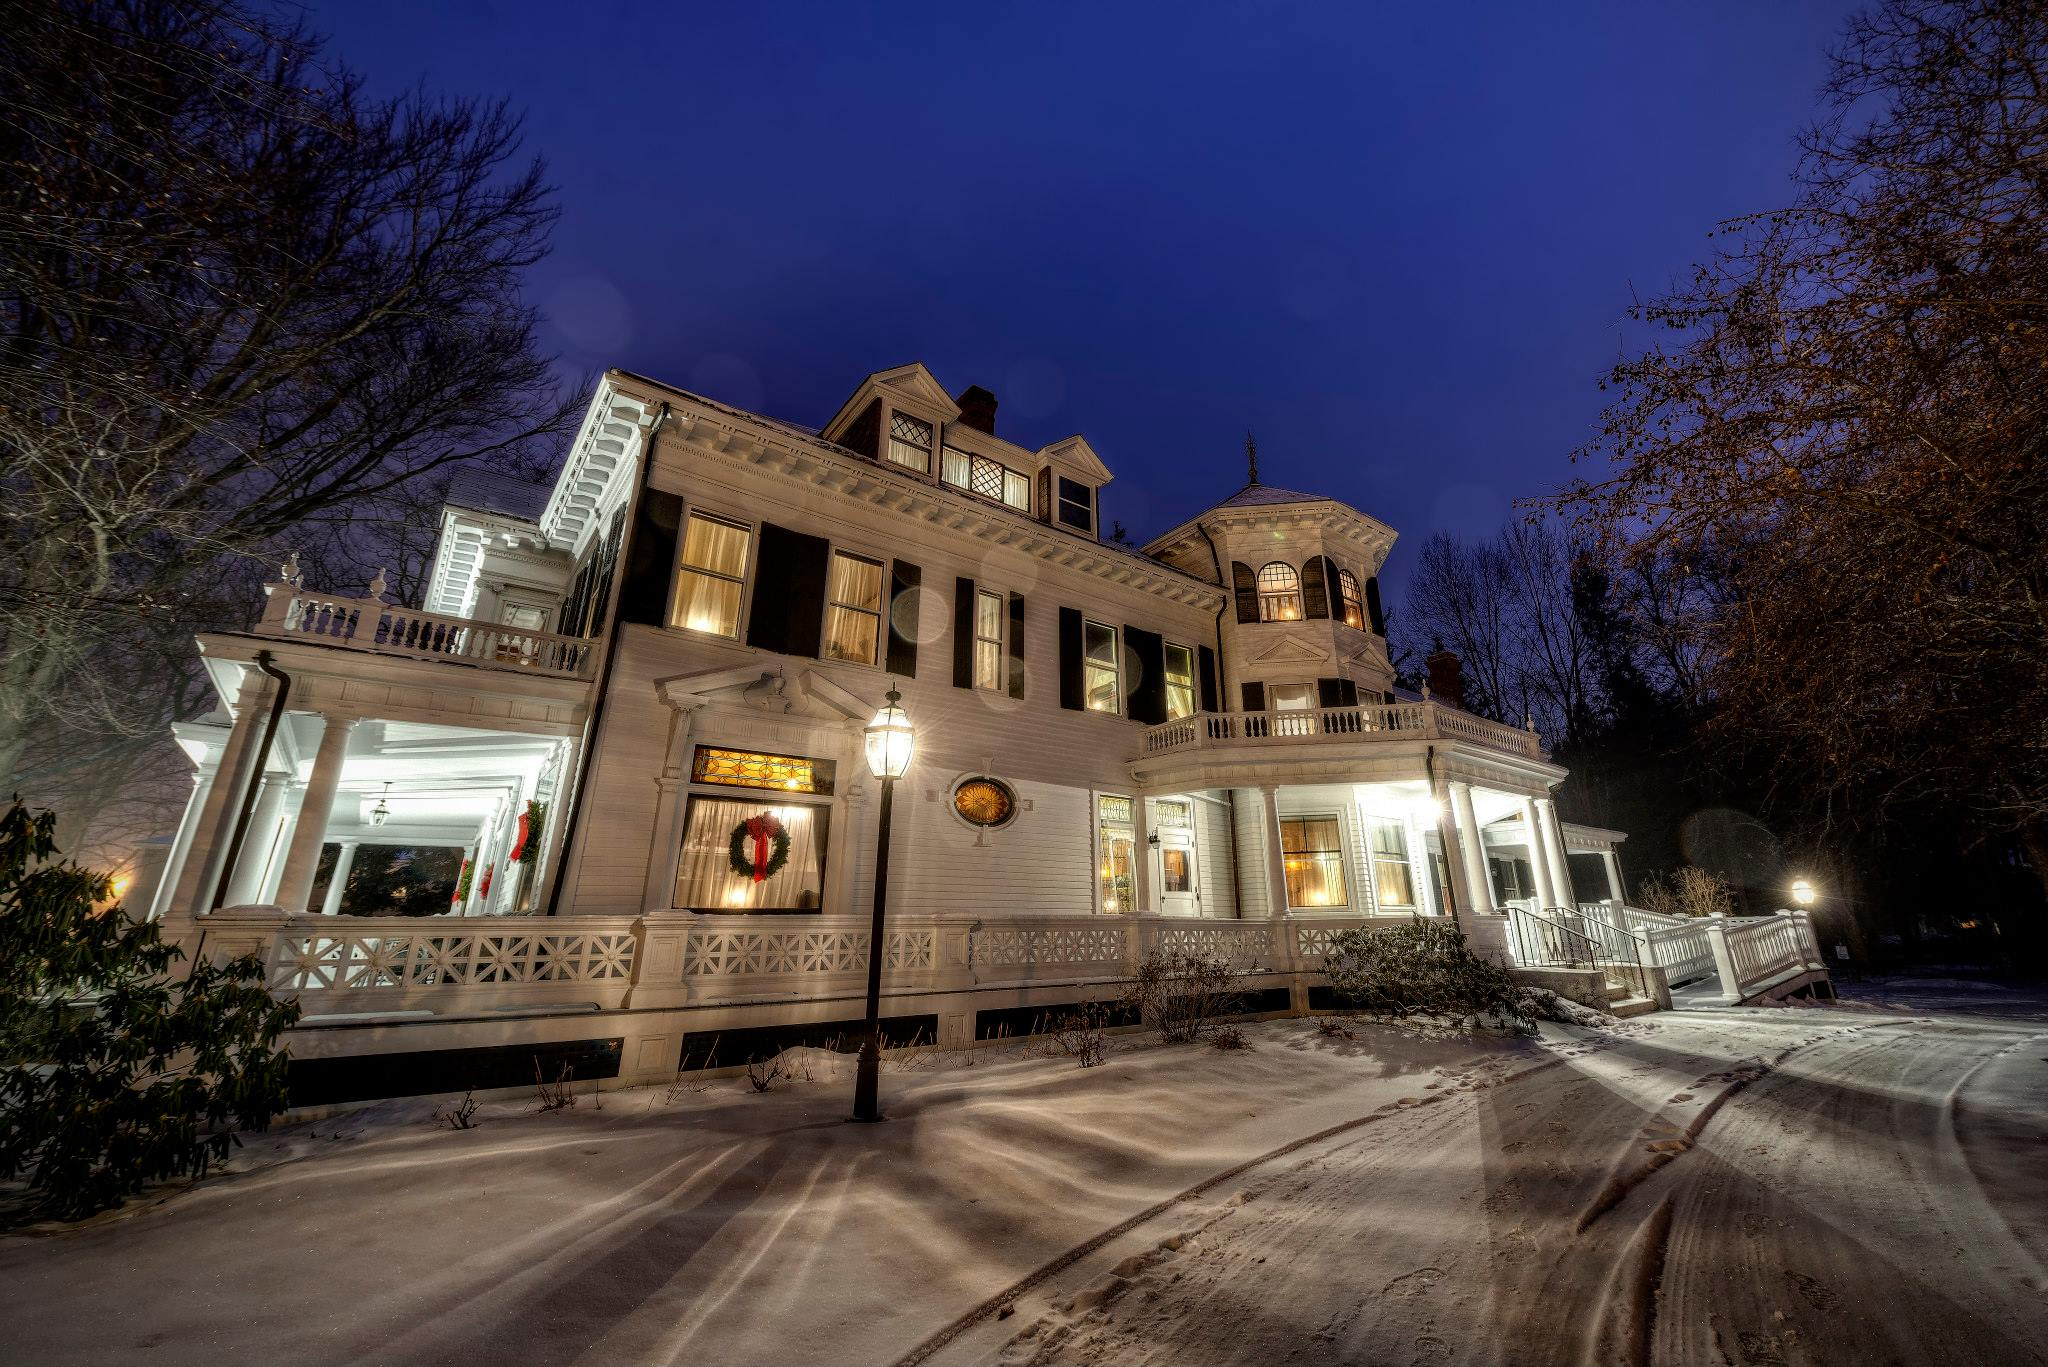 Exterior shot of the Murdock Whitney House at night